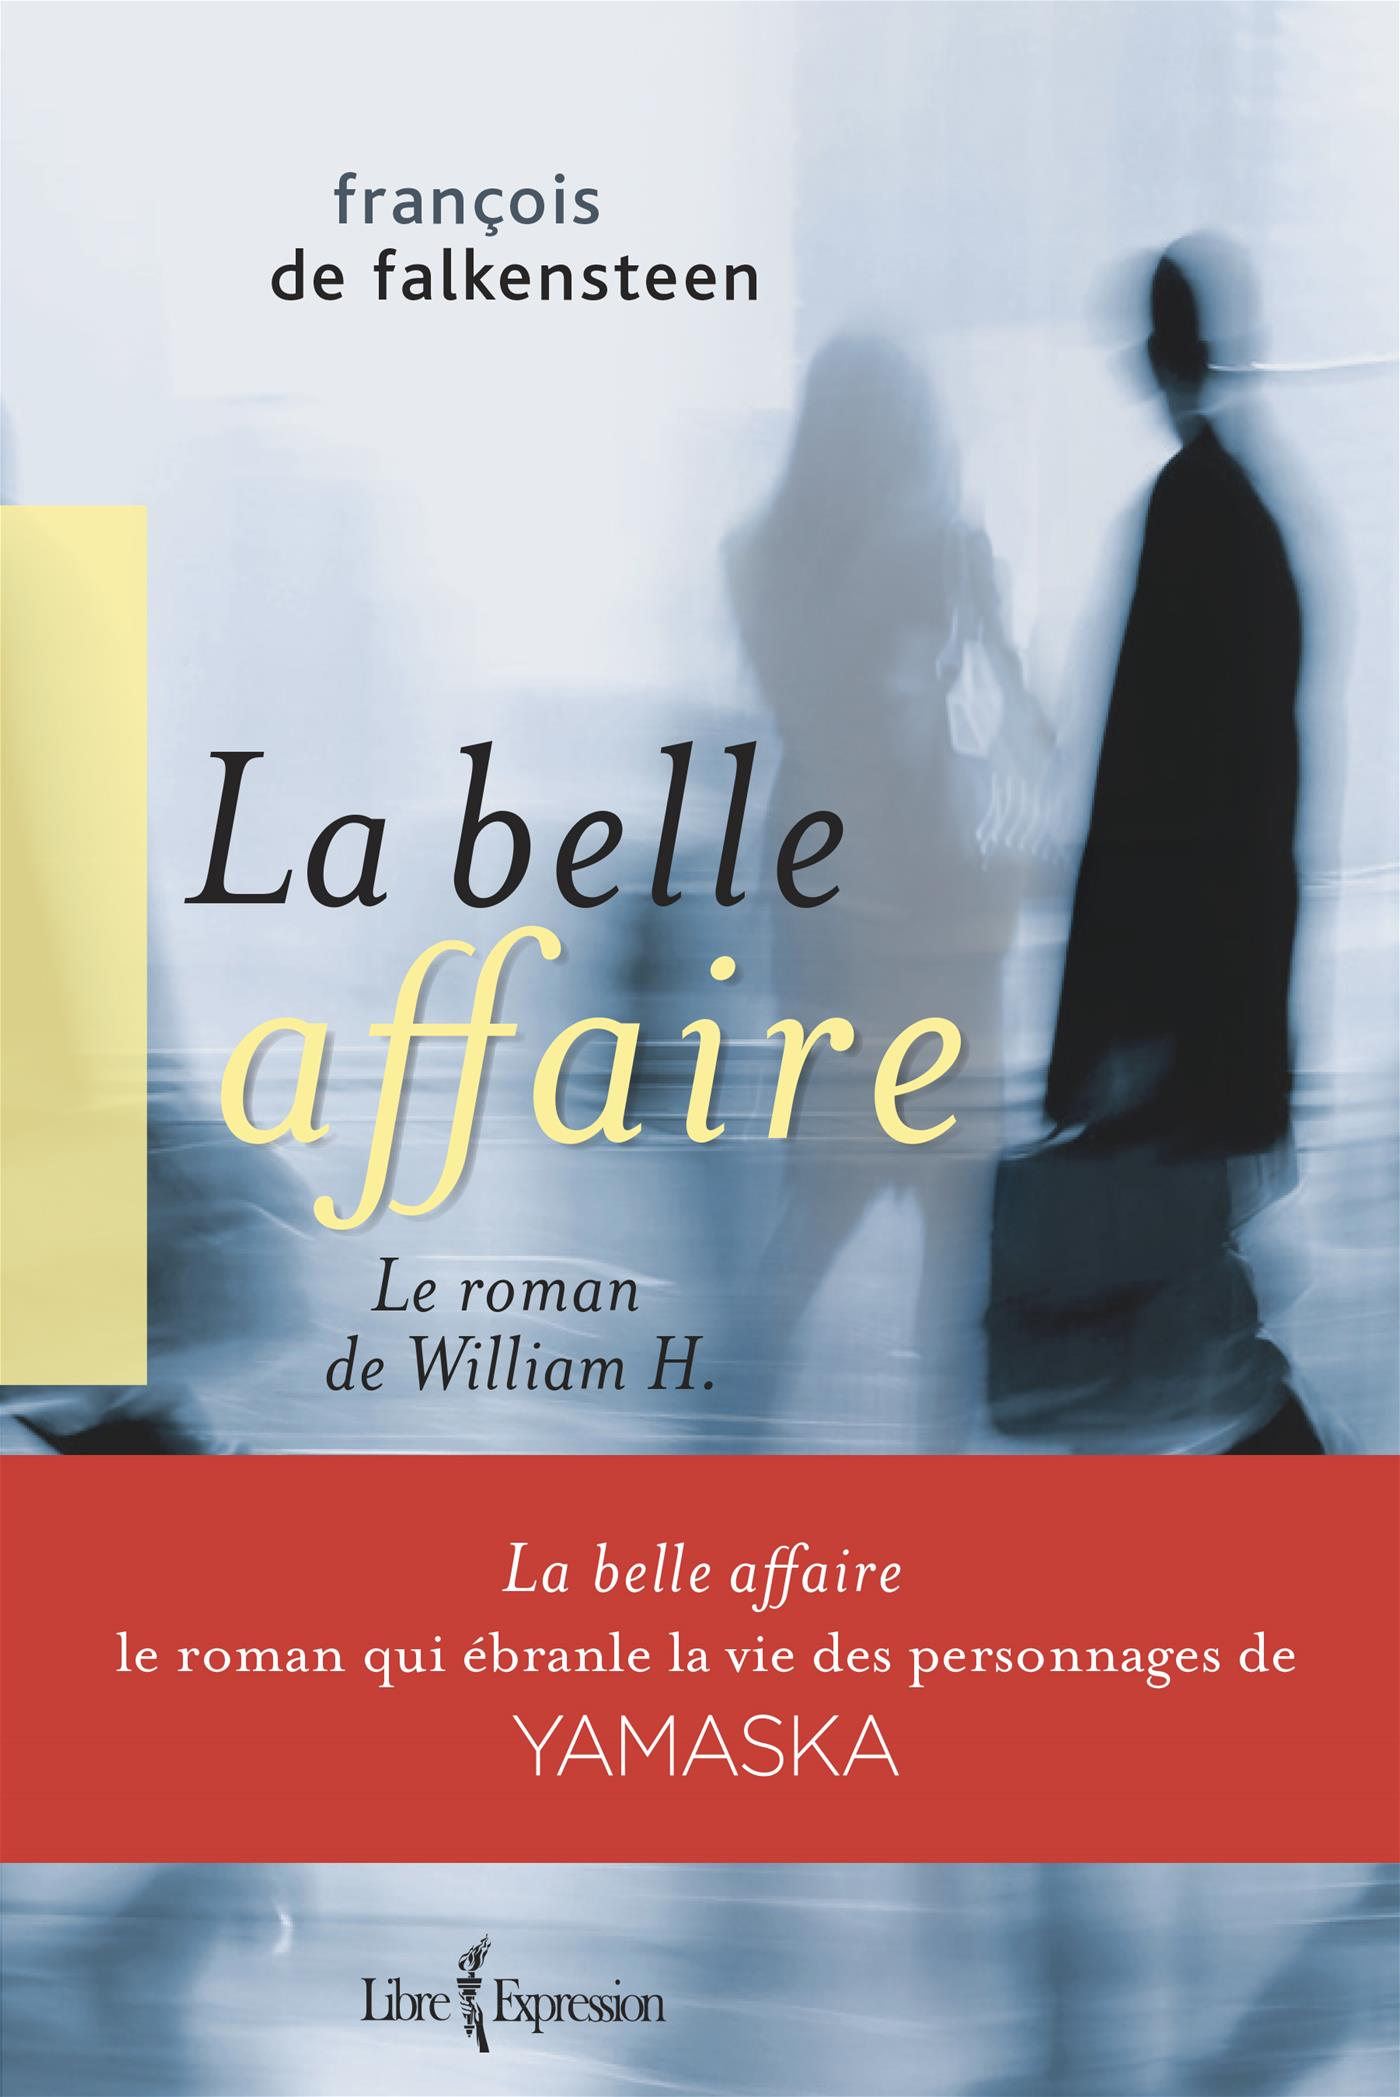 Vignette du livre Belle affaire (La): Le roman de William H. - François De Falkensteen